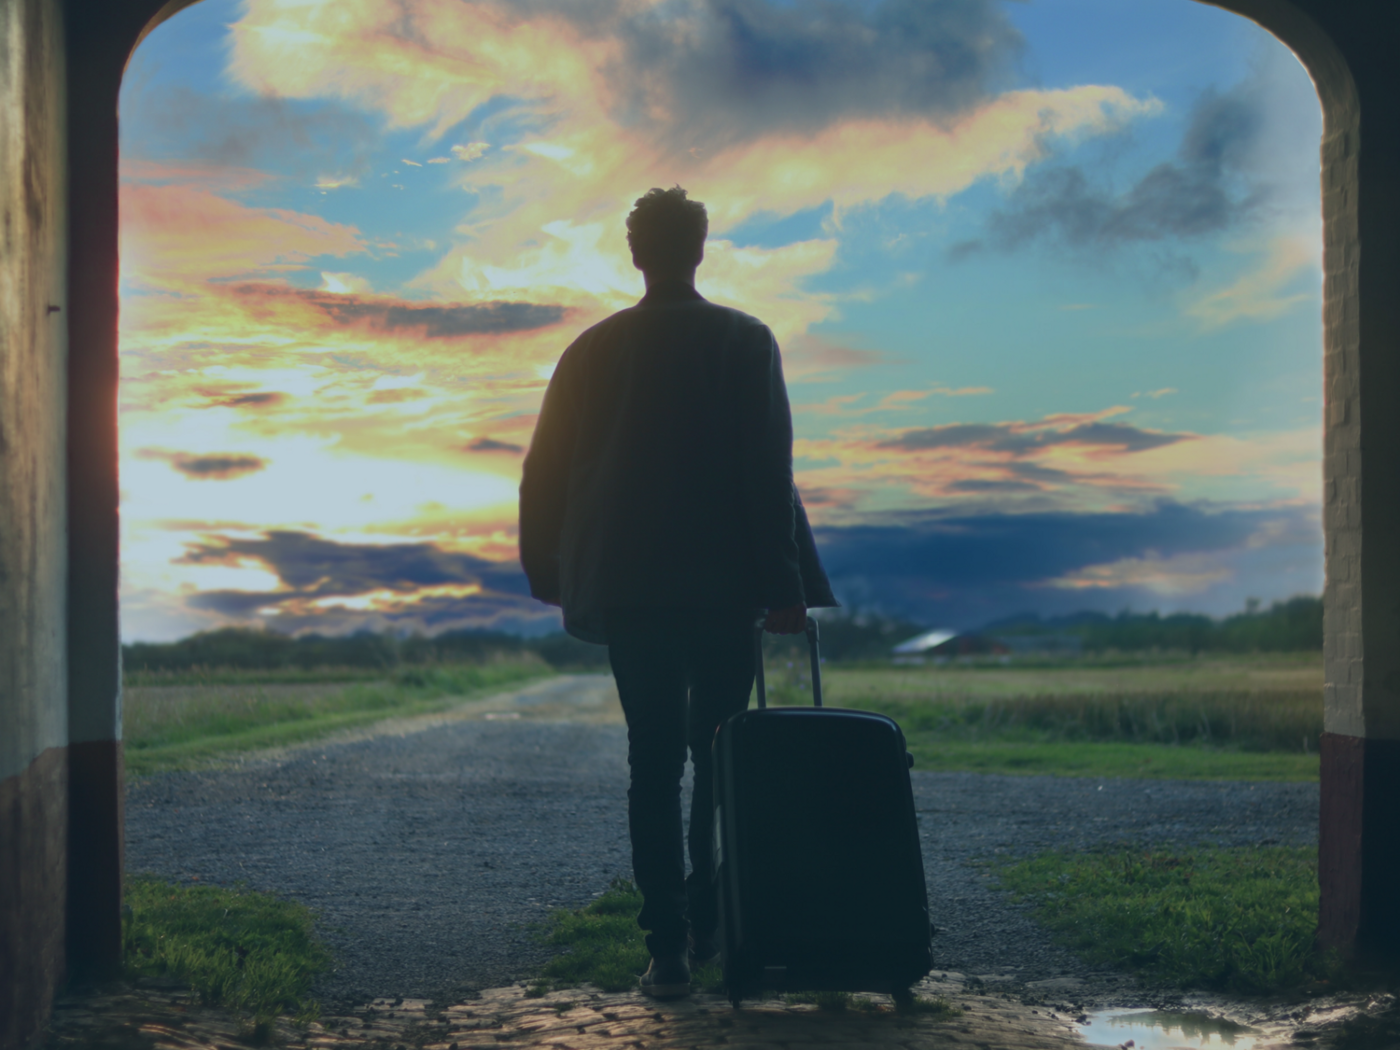 IMAGE IS OF A PERSON WITH A SUITCASE WAKING OUT INTO THE OUTDOORS WITH A BEAUTIFUL SKYSCAPE IN FRONT OF THEM.